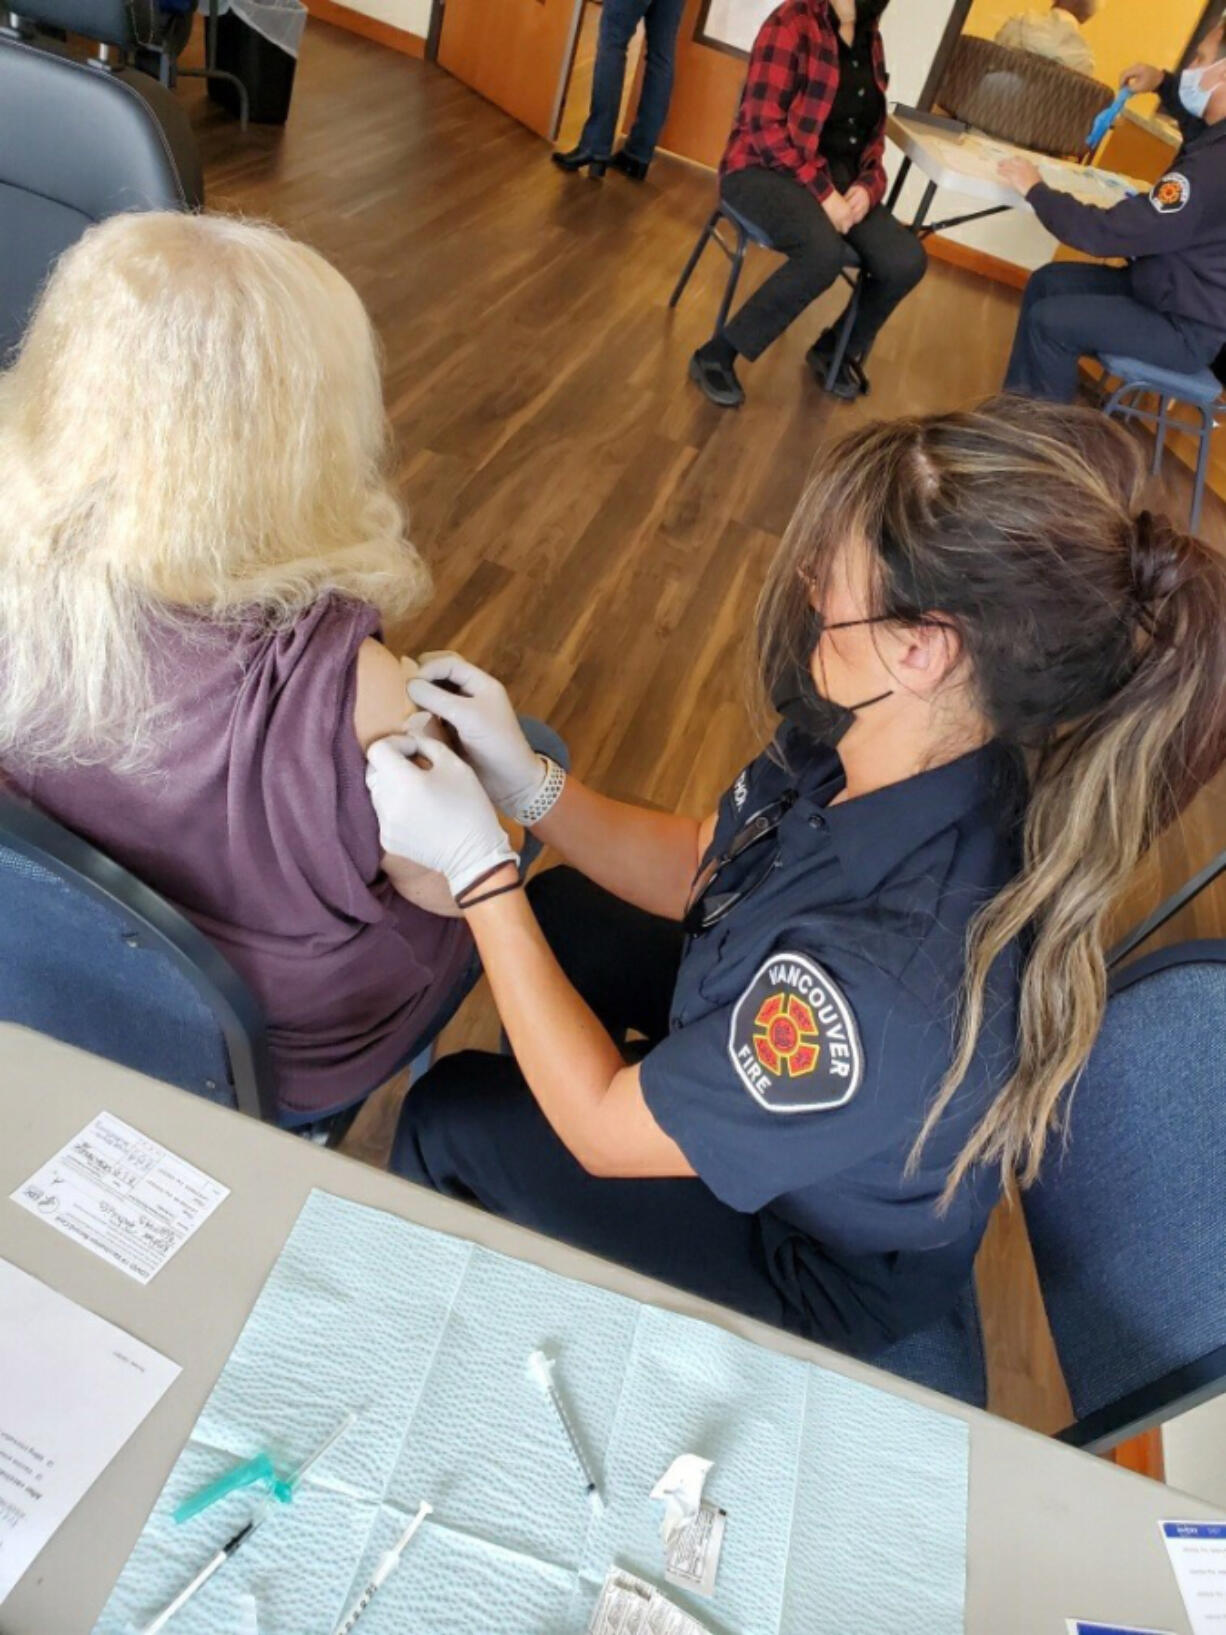 CLARK COUNTY: Members of the Vancouver Fire Department are helping at various sites with the COVID-19 vaccine rollout.